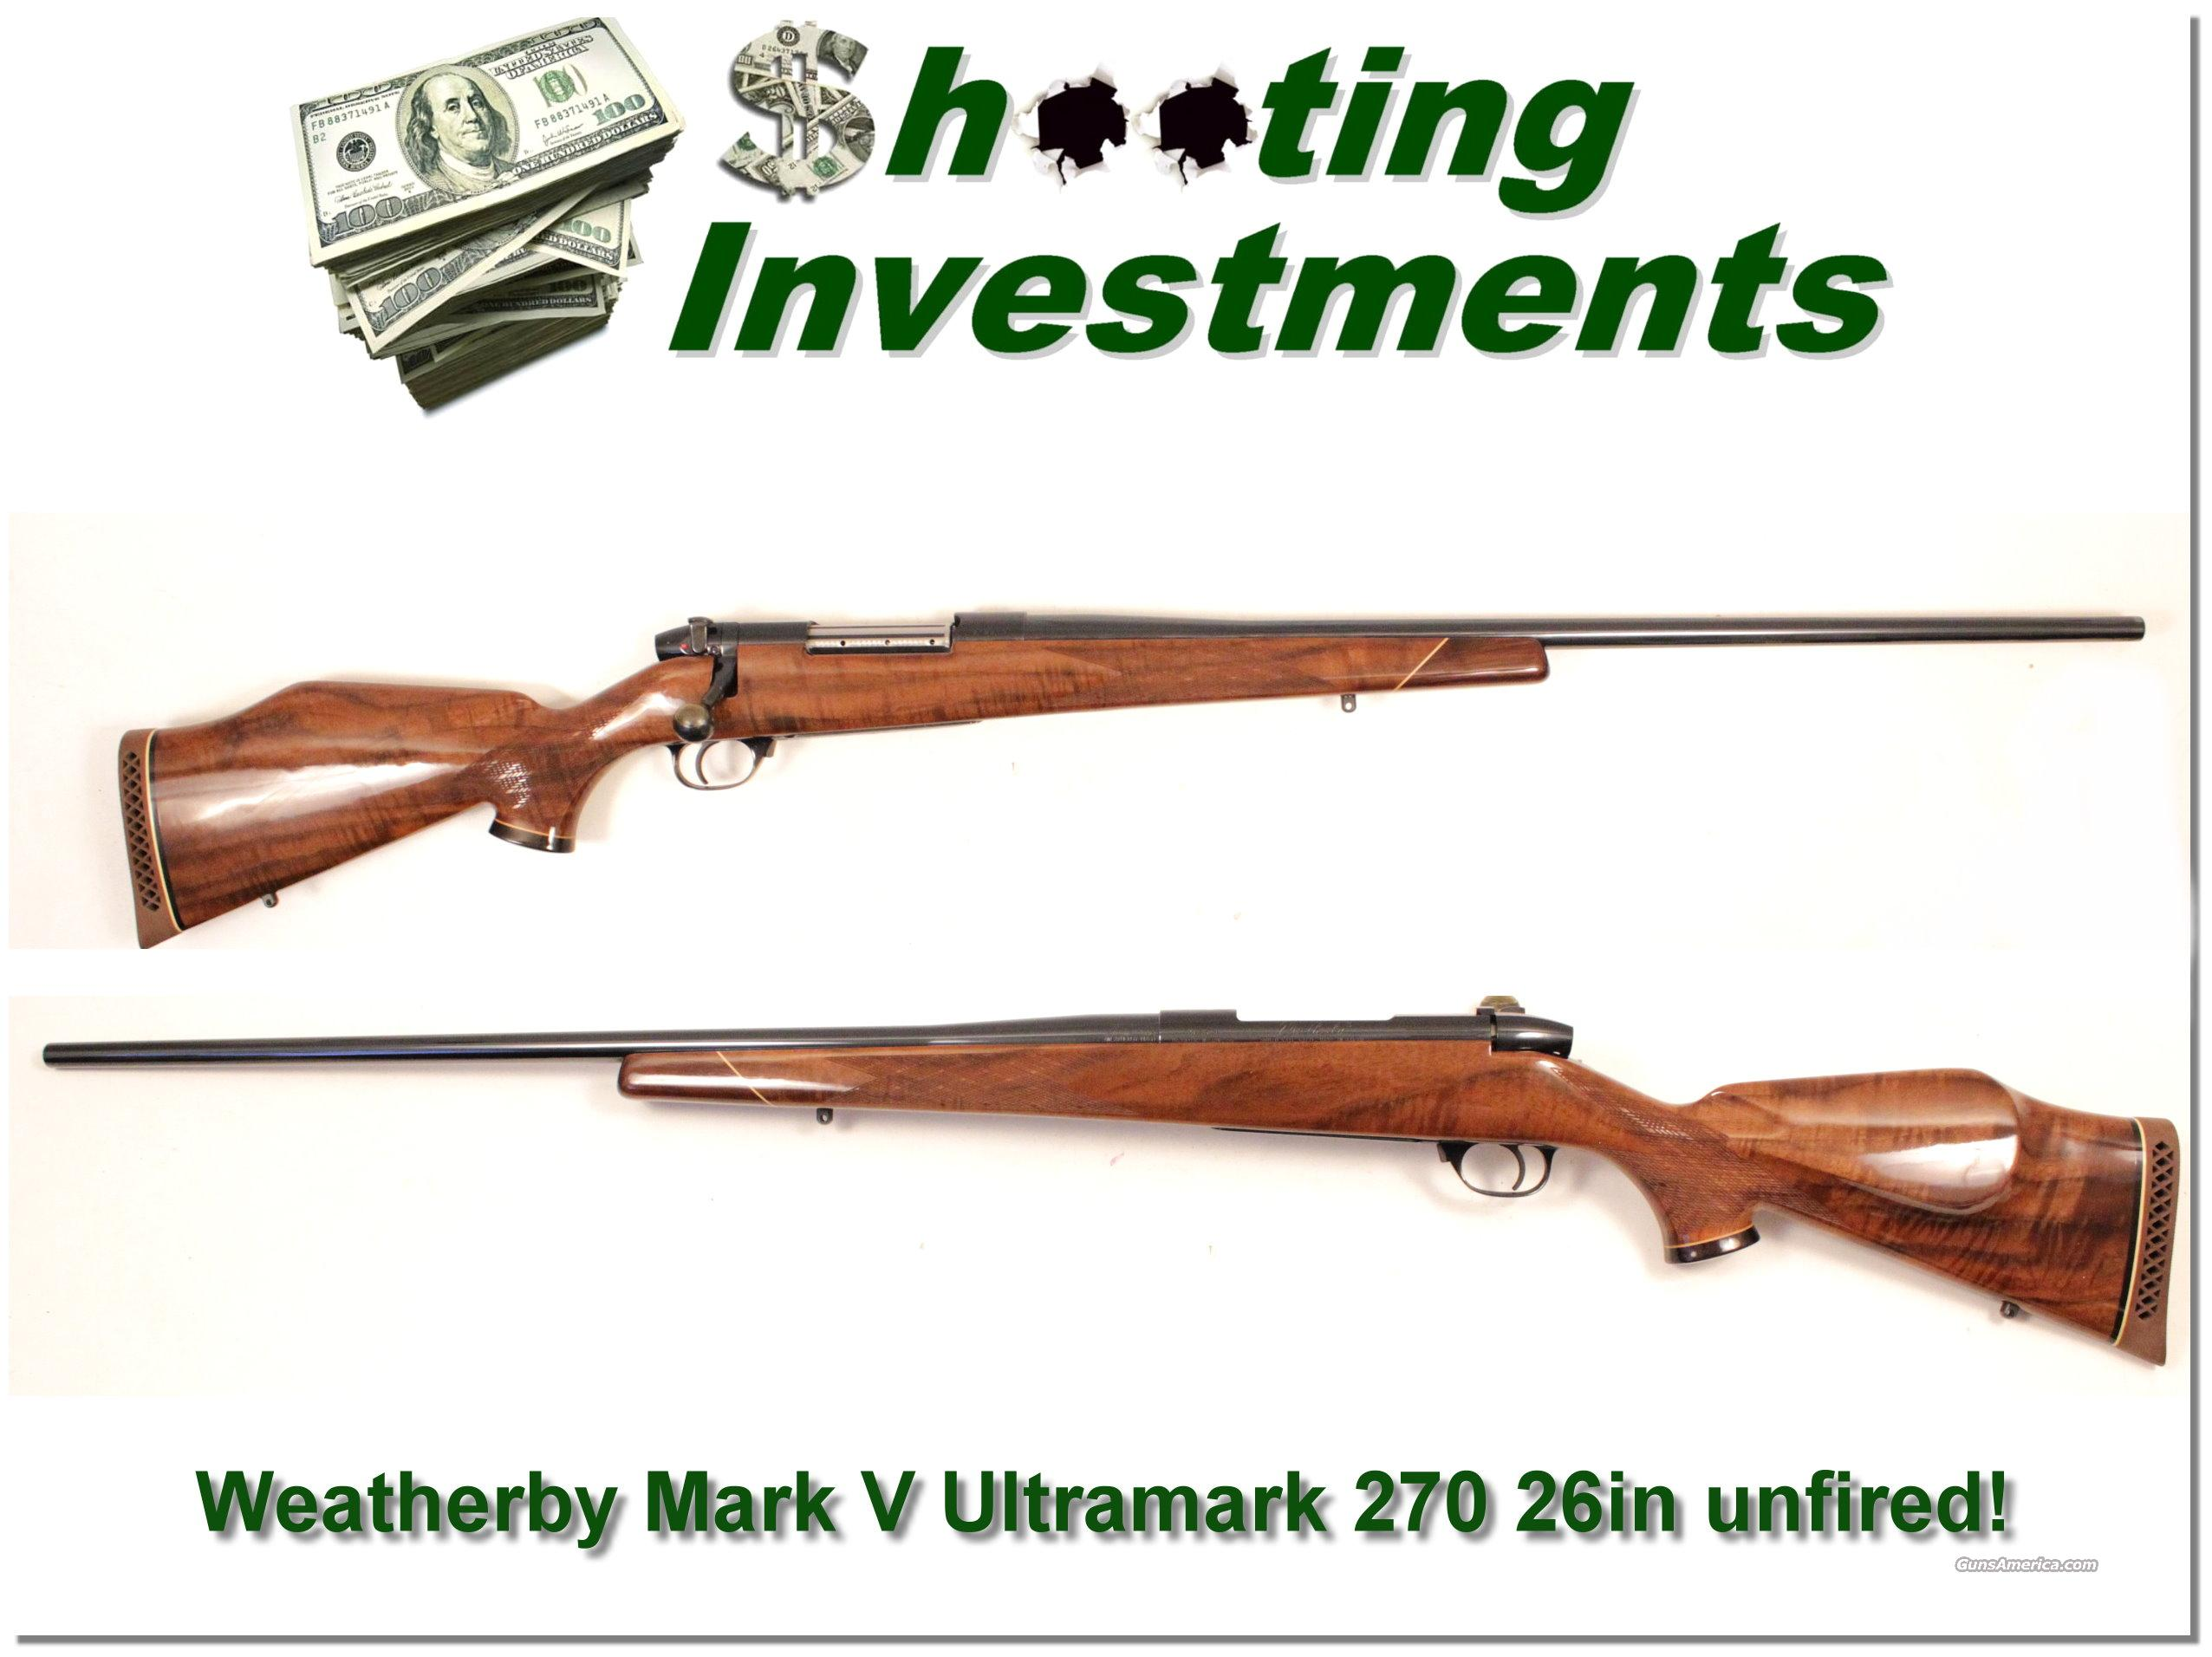 Weatherby Mark V Ultramark new and perfect with XX Wood!  Guns > Rifles > Weatherby Rifles > Sporting